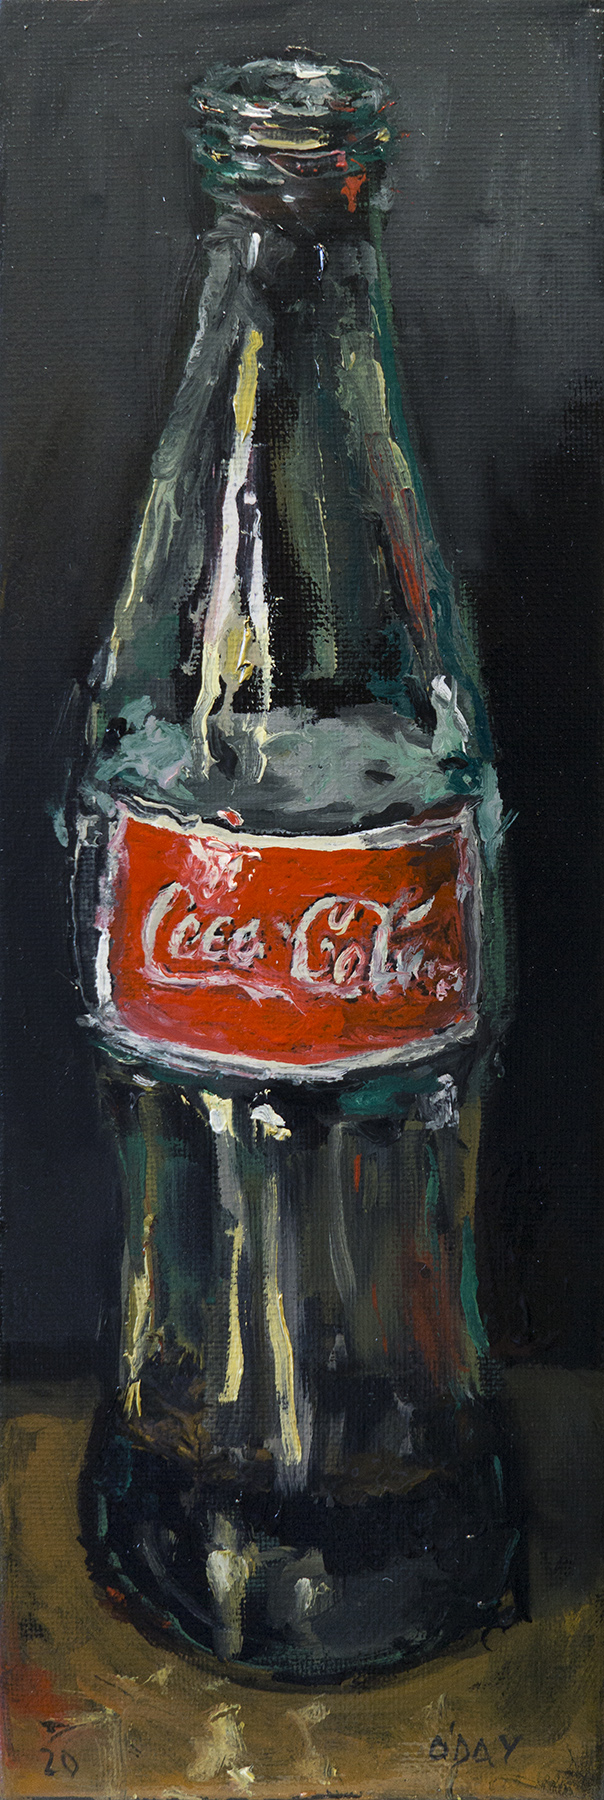 "Coca-Cola, oil on canvas, 12x3"", 2020 SOLD"